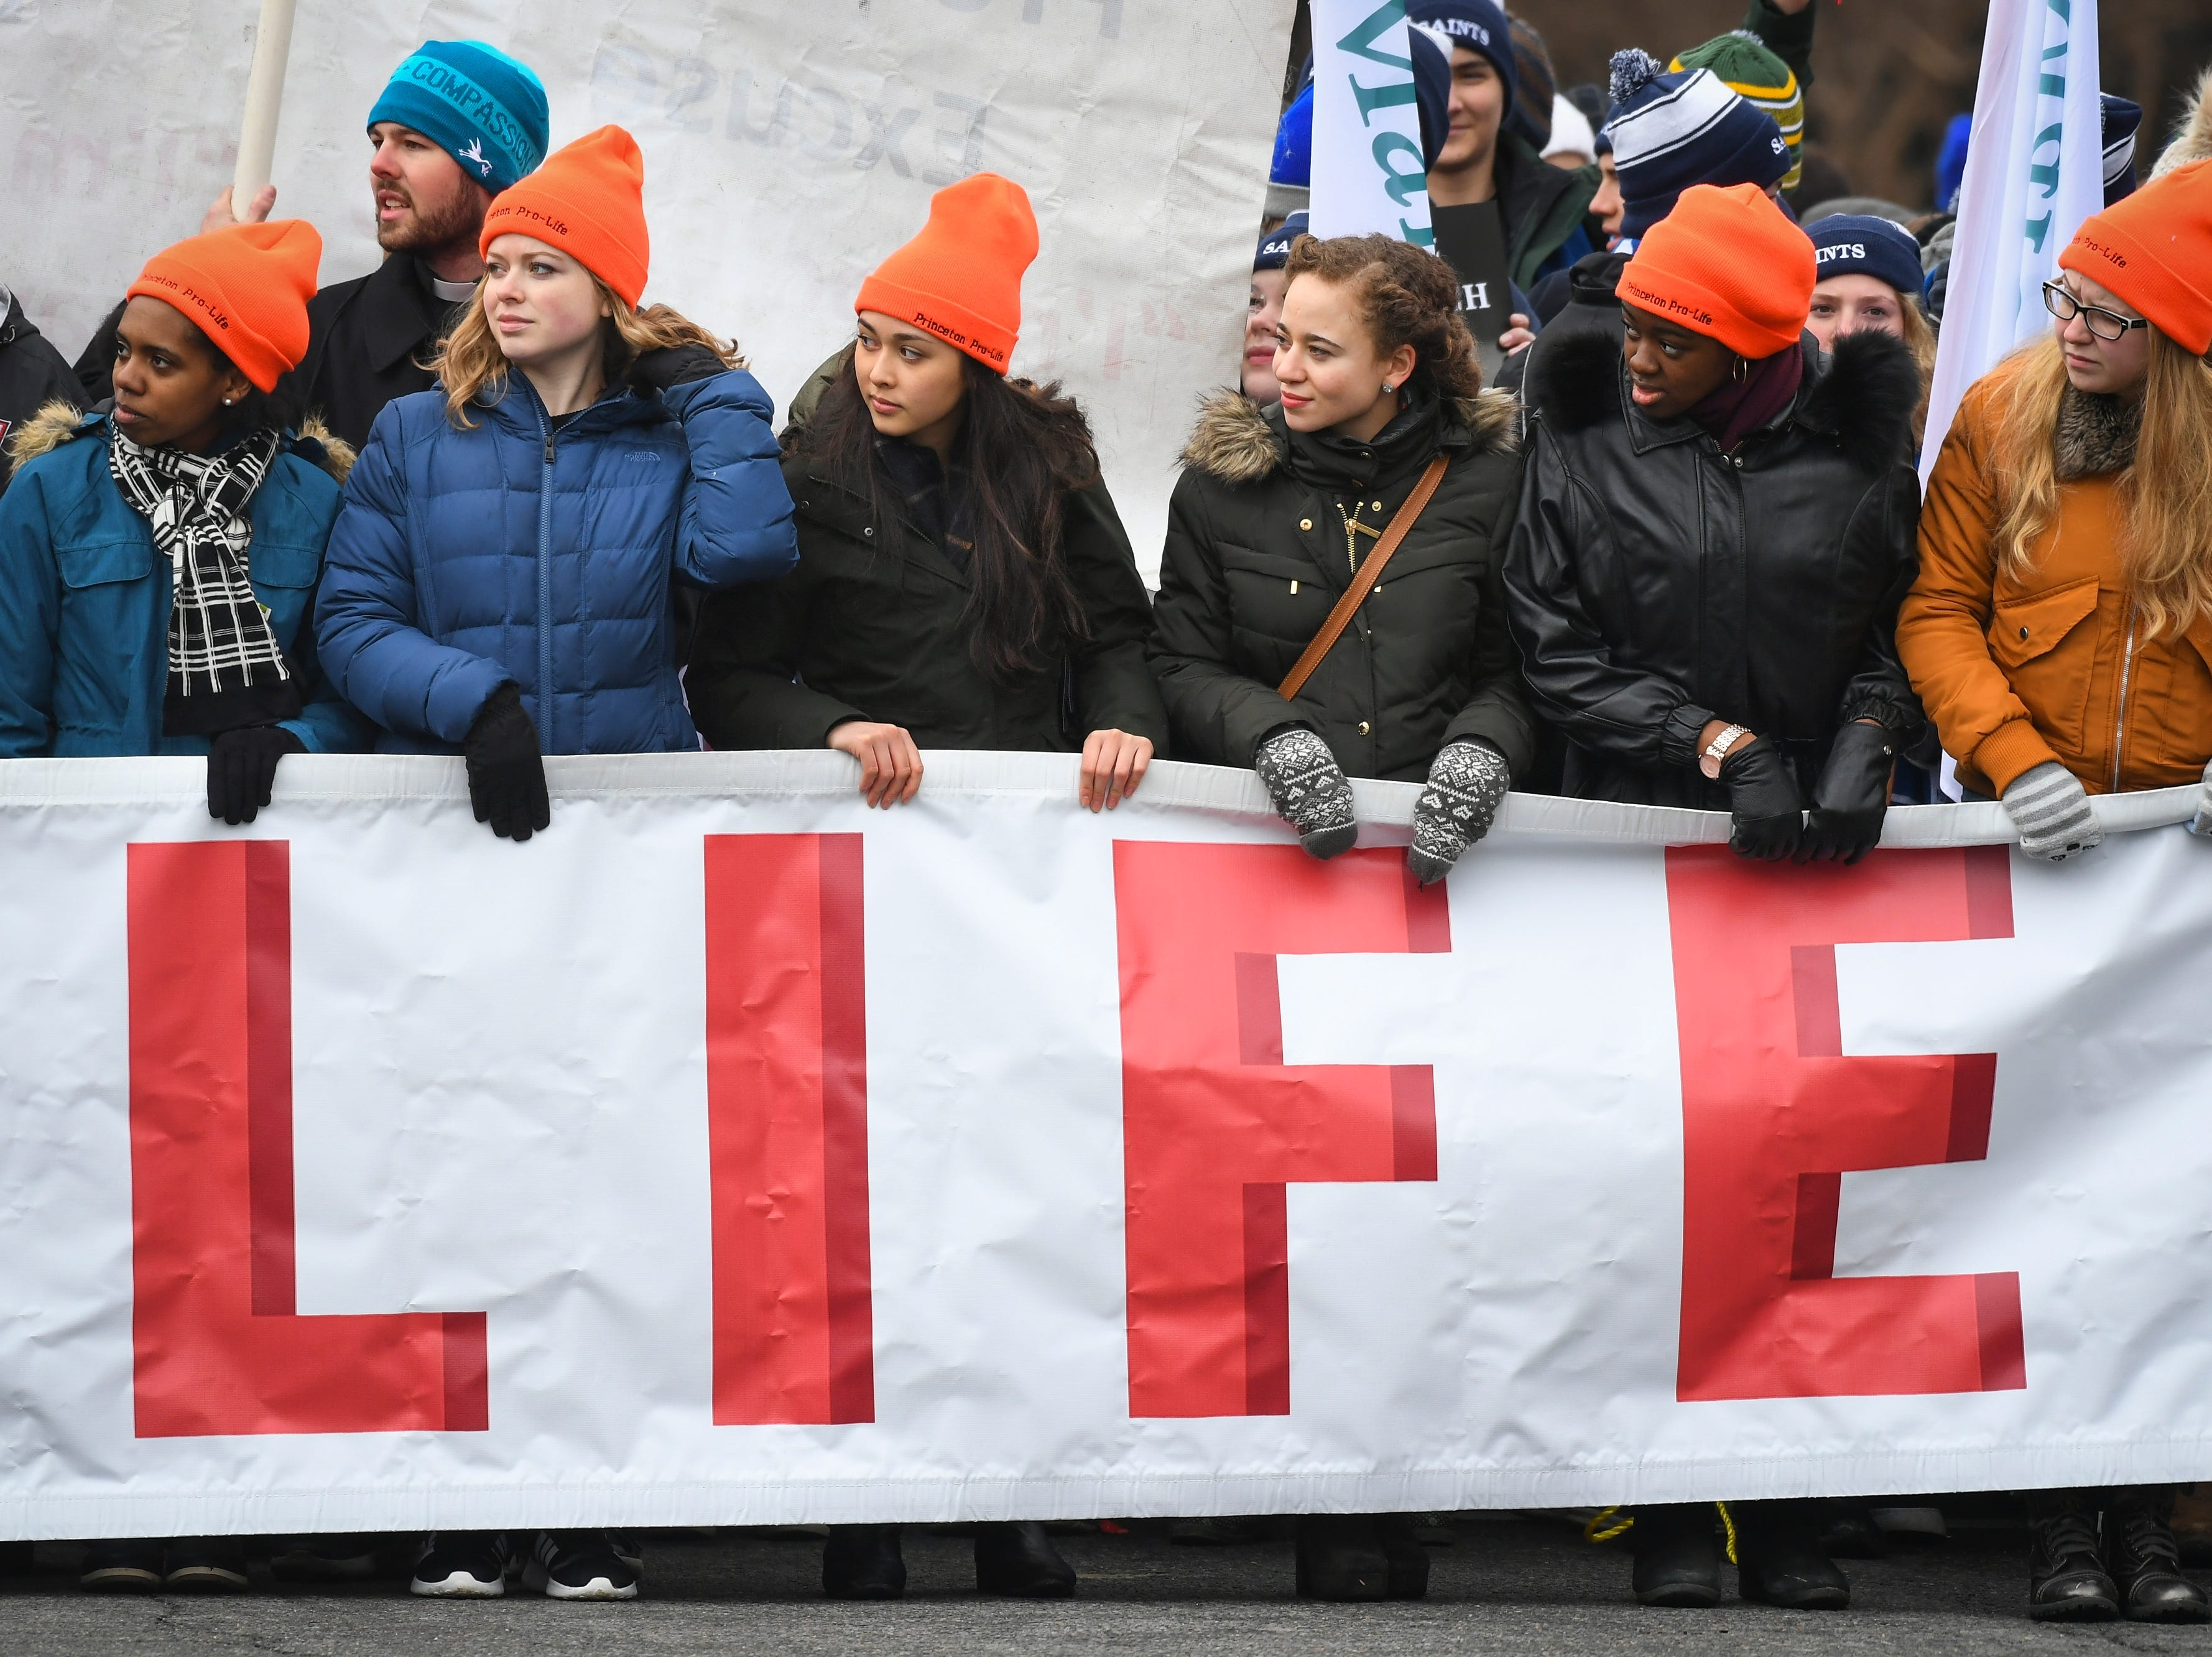 """Signs reading """"Choose love, Choose life,"""" """"I am the pro-life generation,"""" and """"Defund Planned Parenthood"""" dotted the crowd gathering under hazy, wintry skies at the morning rally."""